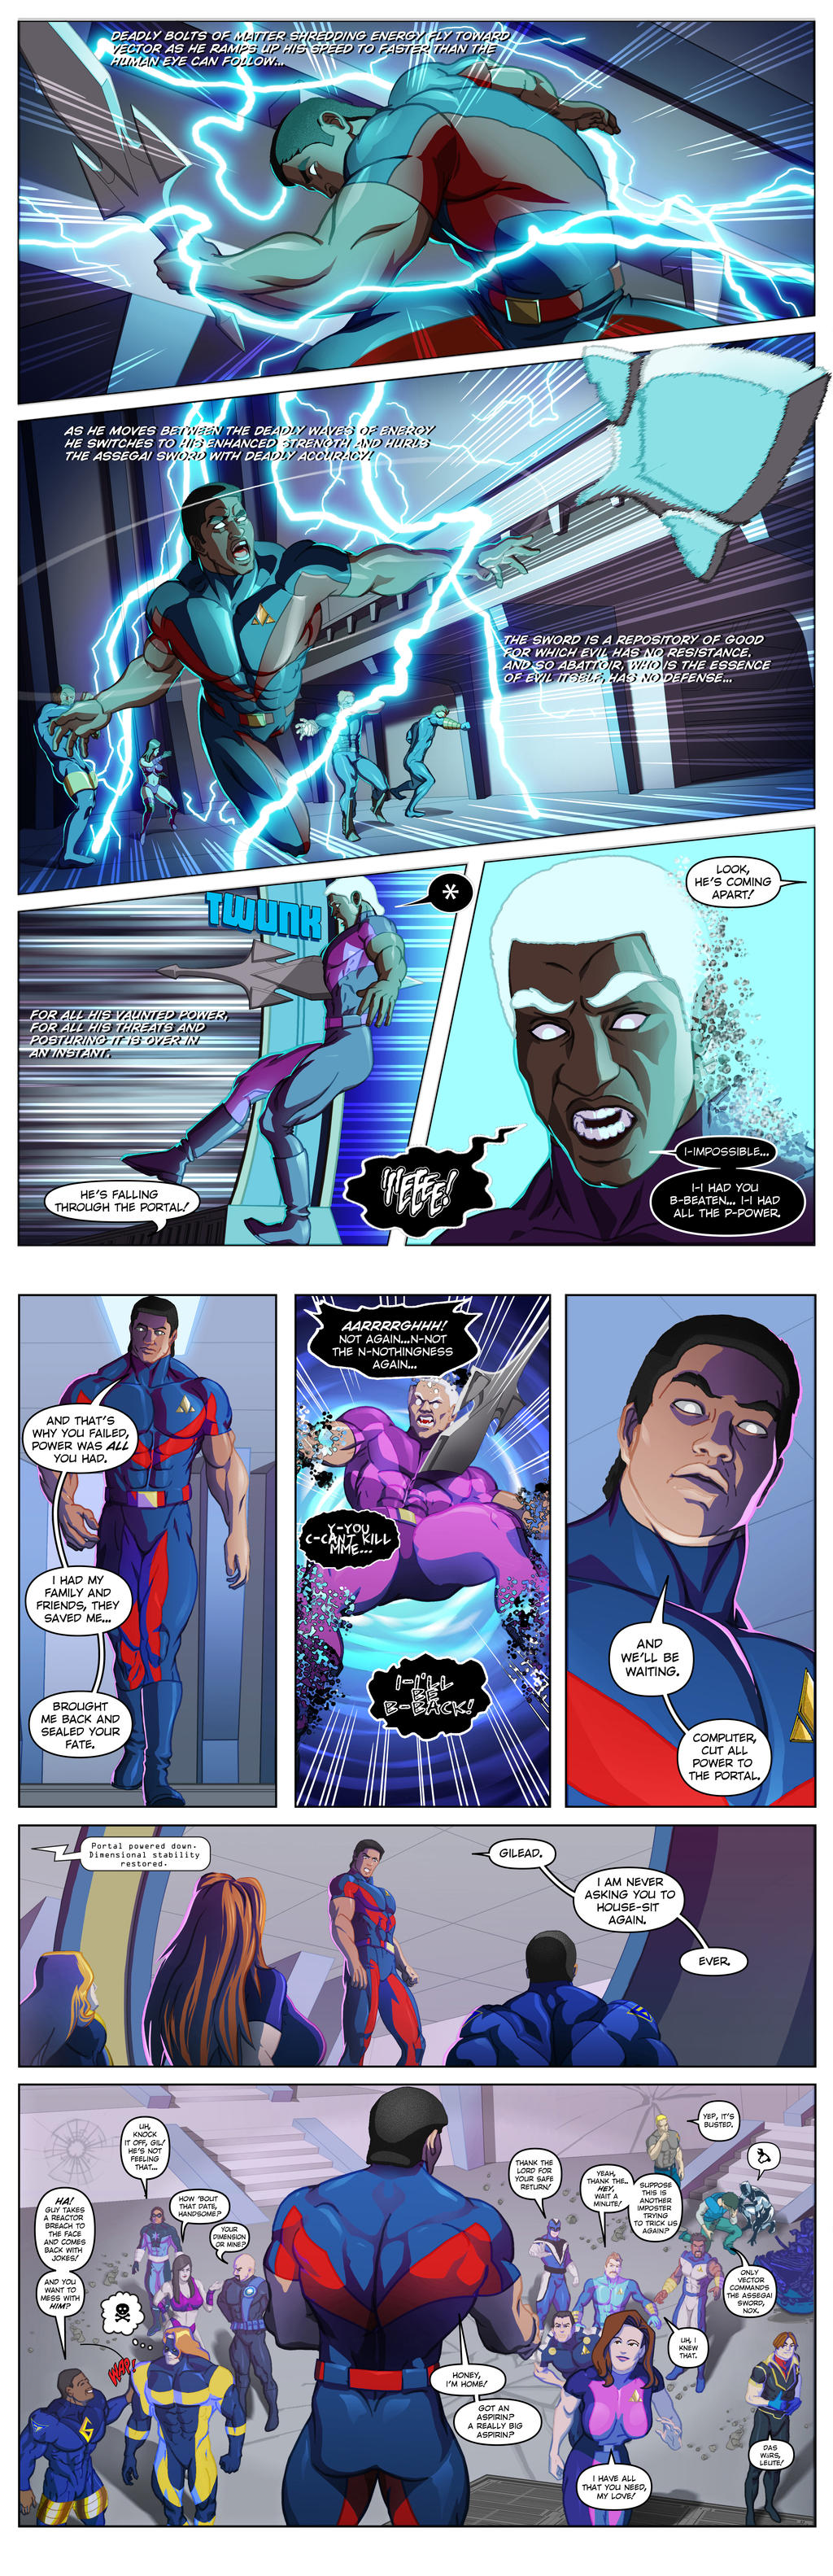 MOCC page 43-44